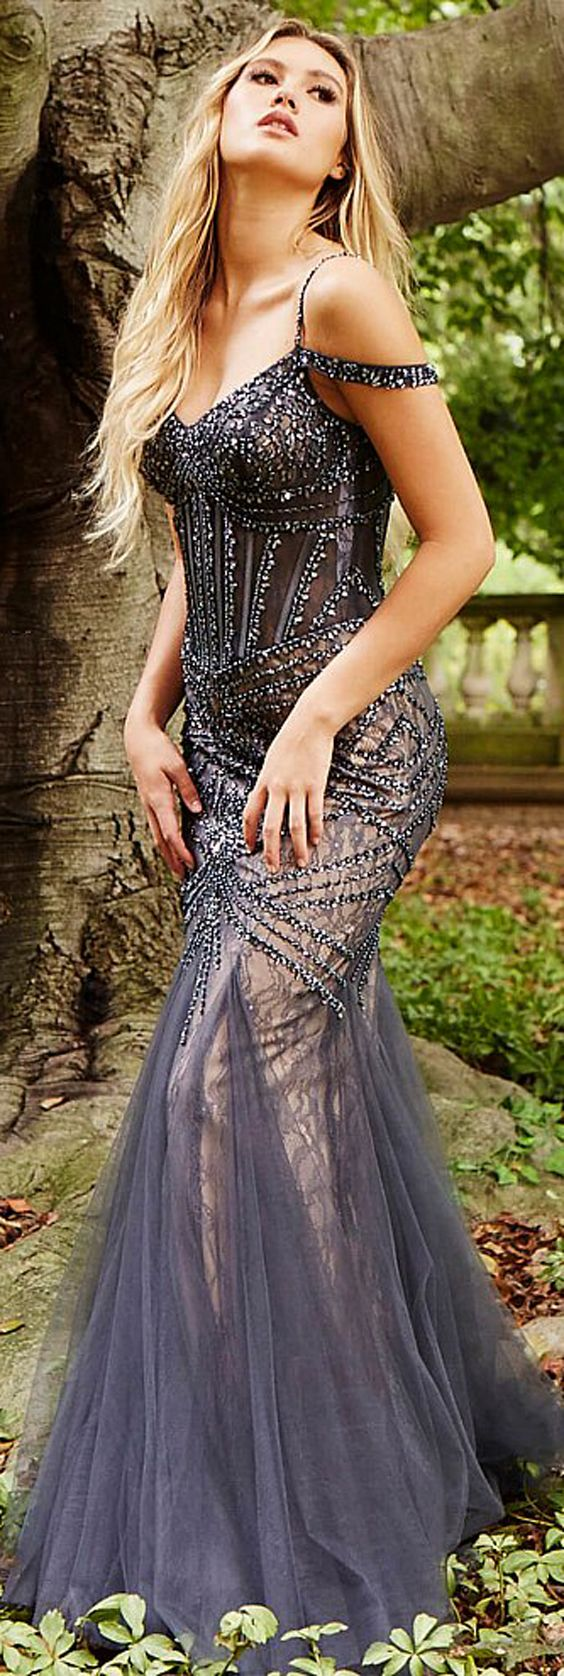 This #Jovani charcoal gray prom gown features a corset-boned sheer bodice, with cold-shoulder straps framing the sweetheart neckline and shallow V-back. Intricate tonal beadwork on tulle overlays this lace prom dress, ending in a godet skirt and sweep train. A nude lining creates a striking contrast to this trumpet formal dress.